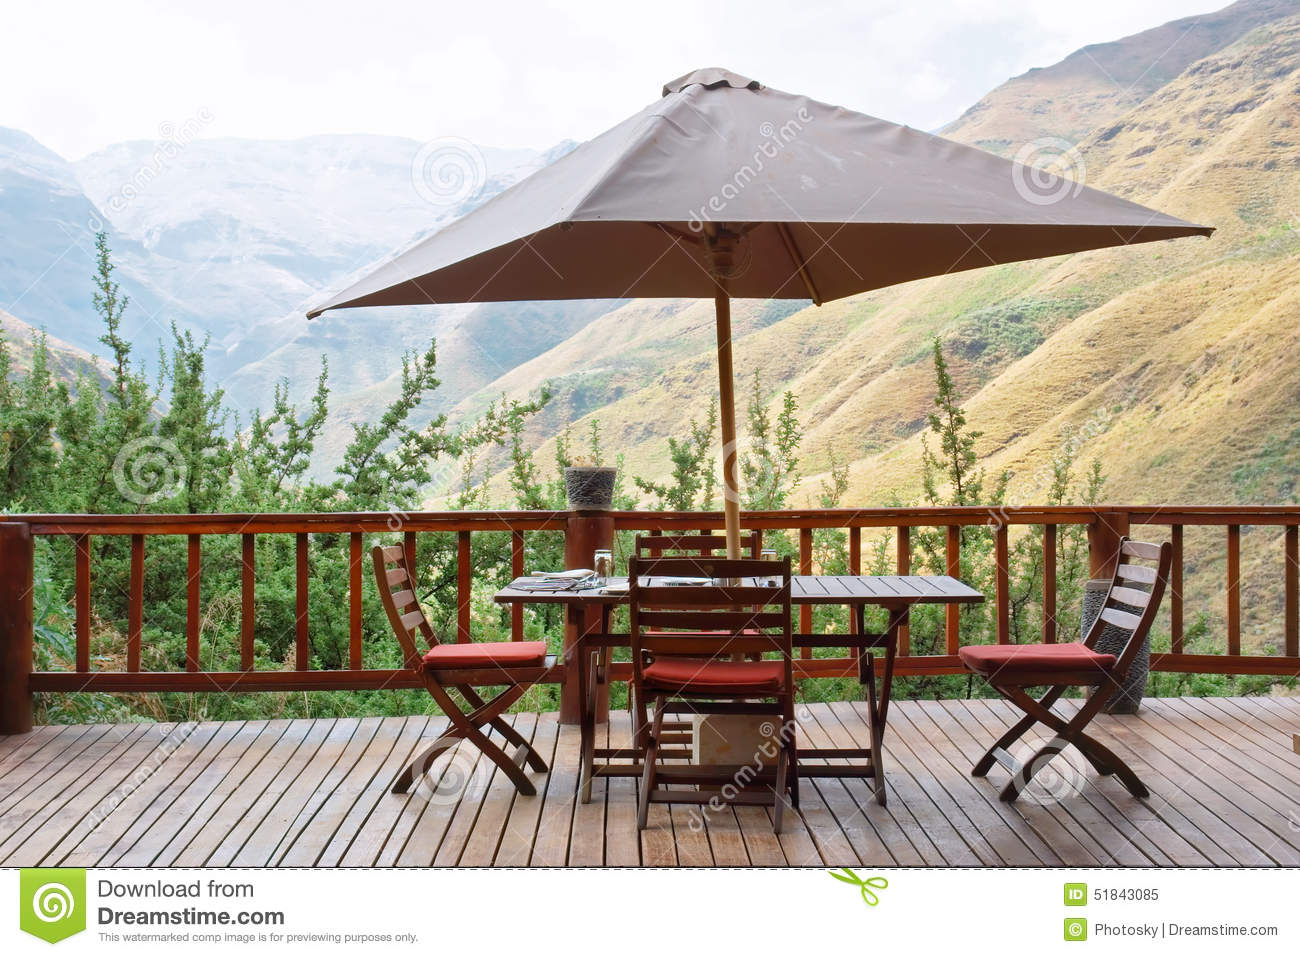 Table and chairs under umbrella on terrace against awesome mount